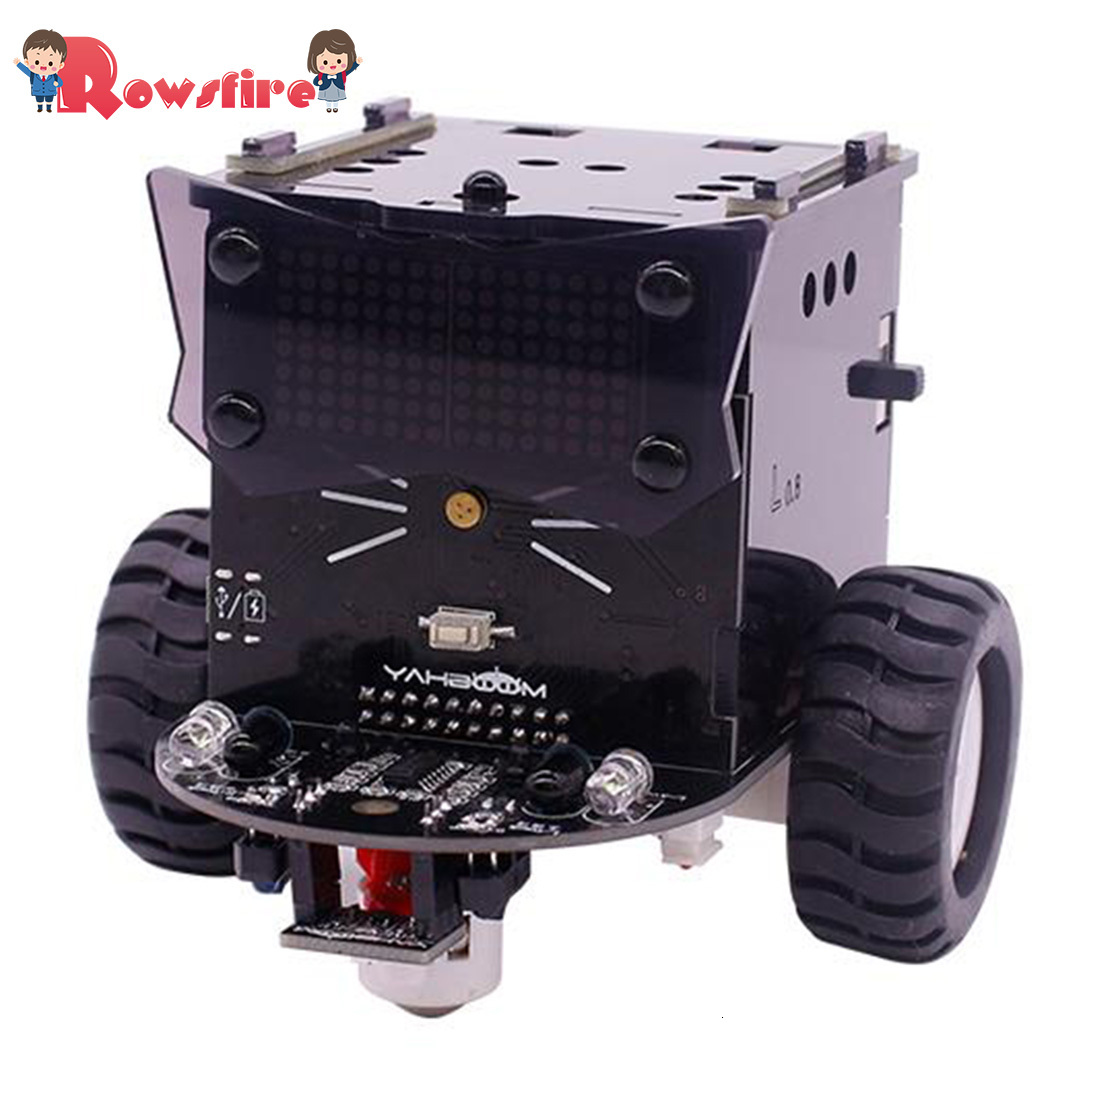 High Recommend 1 Set Standard Version Omibox Scratch Programmable Robot Car Kit